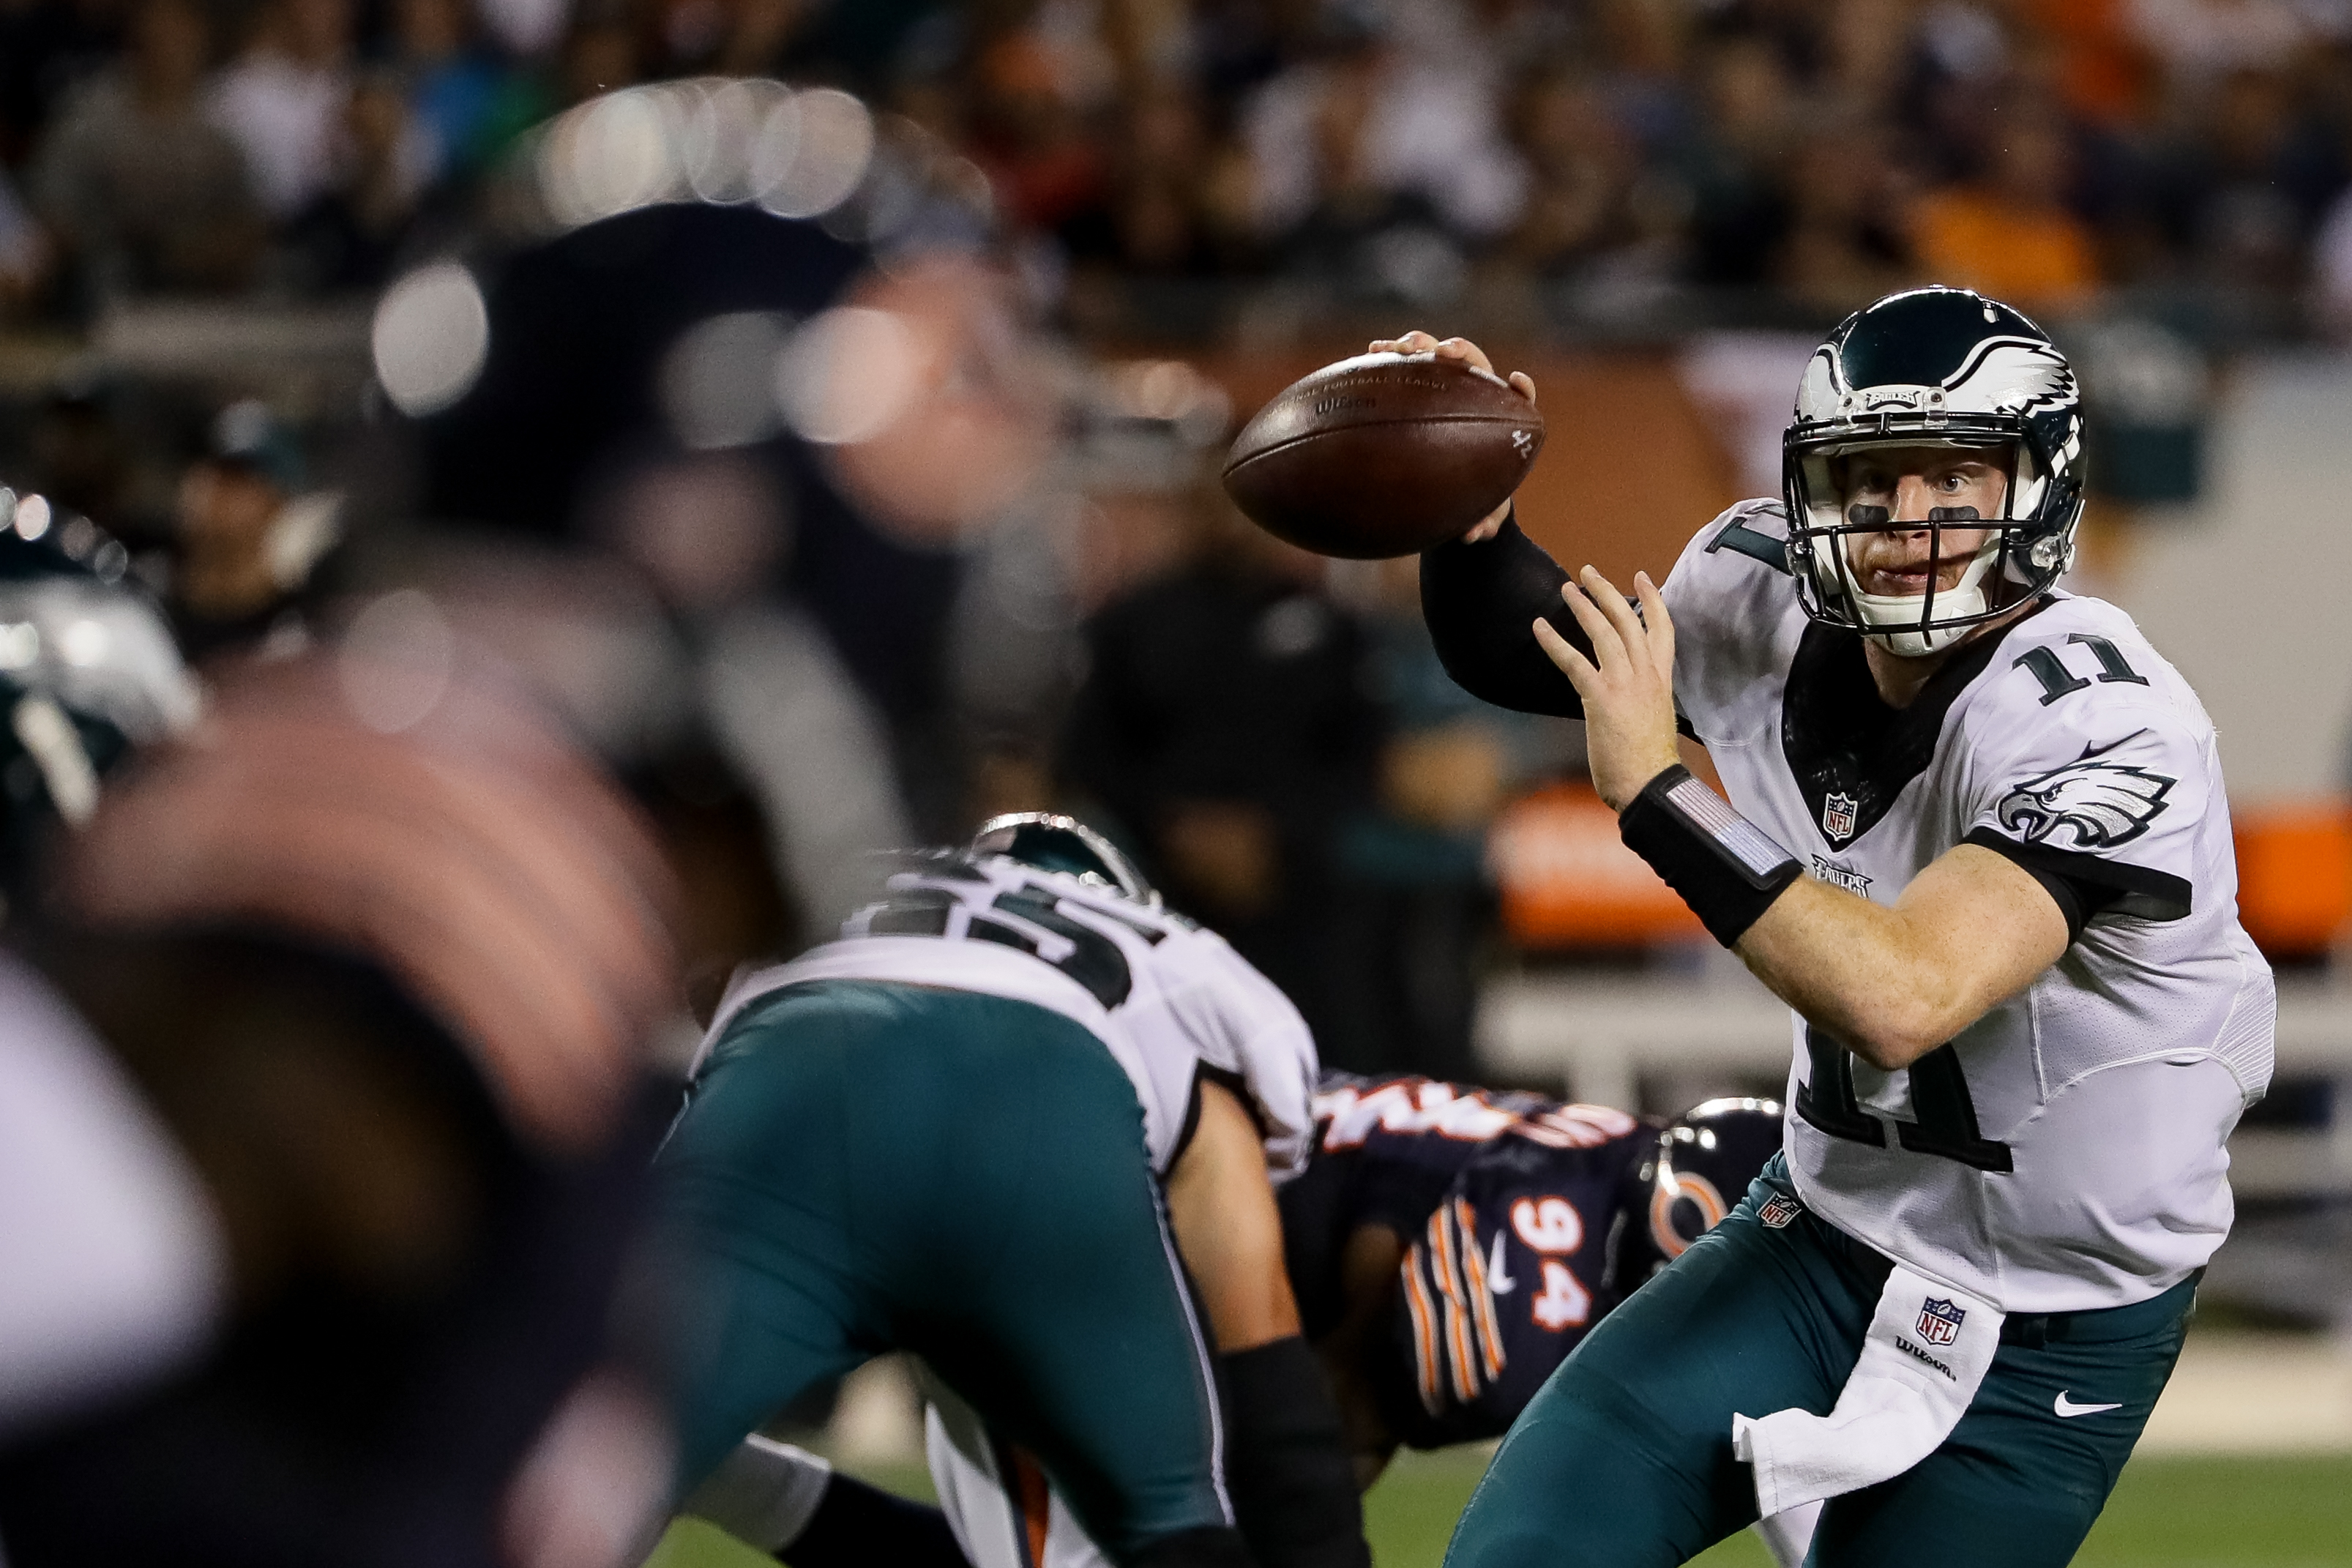 CHICAGO, IL - SEPTEMBER 19:  Quarterback Carson Wentz #11 of the Philadelphia Eagles looks to pass the football in the first half against the Chicago Bears at Soldier Field on September 19, 2016 in Chicago, Illinois.  (Photo by Jonathan Daniel/Getty Images)